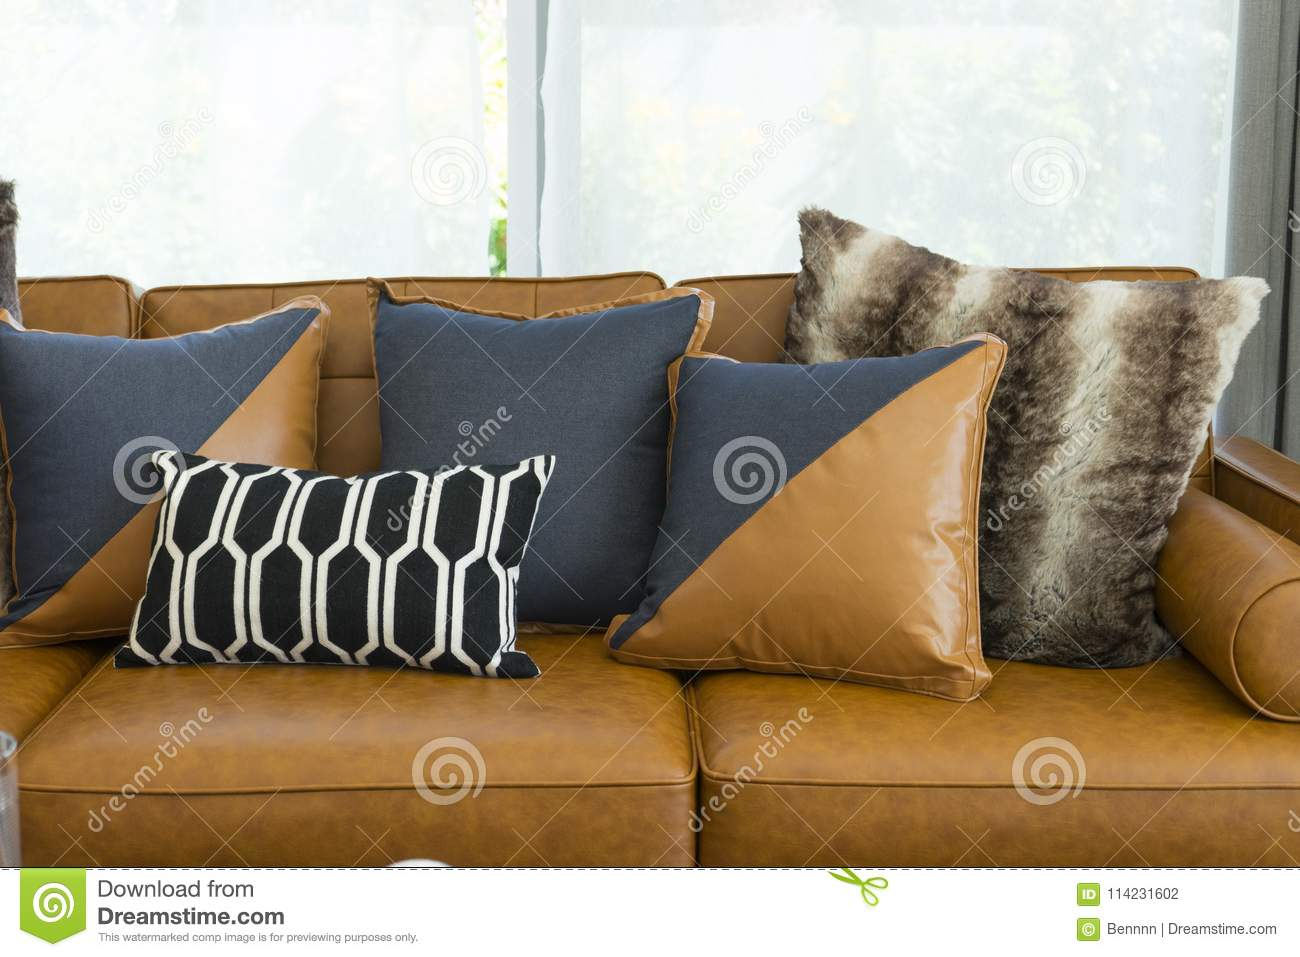 Decorative Pillow On Leather Sofa In Living Room Stock Photo ...